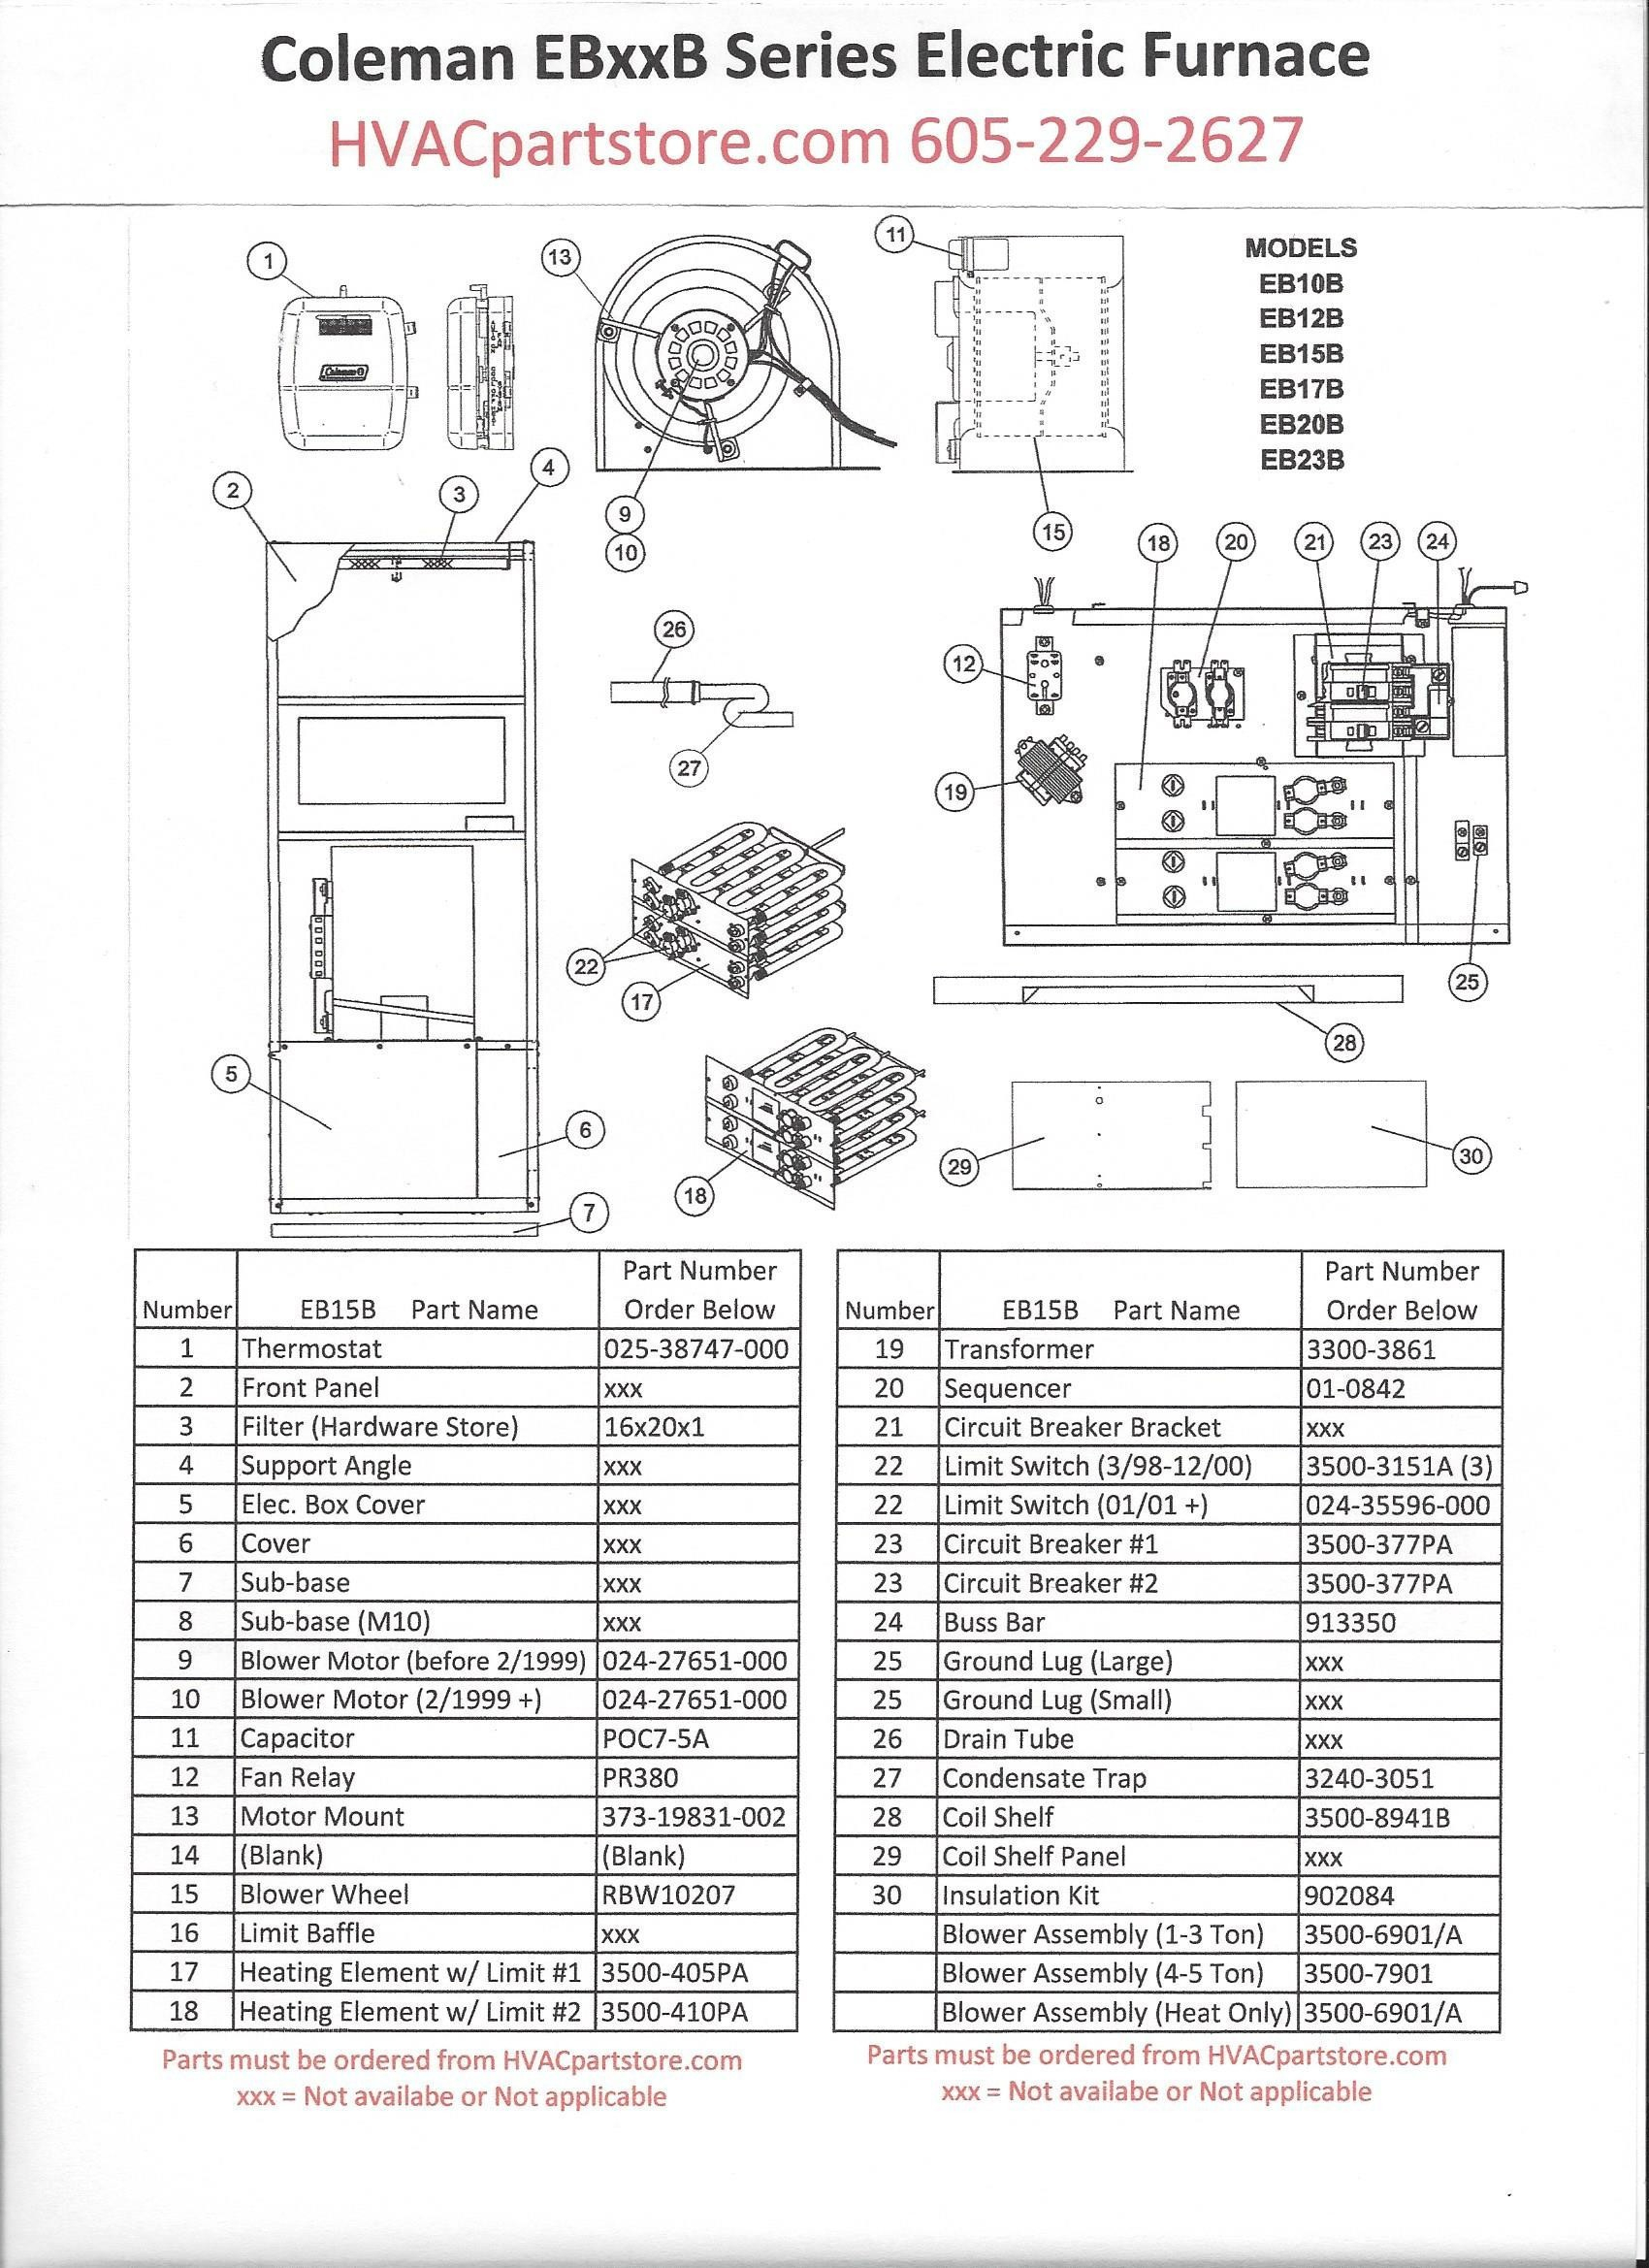 Suburban Rv Furnace Diagram | Wiring Diagram - Suburban Rv Furnace Wiring Diagram